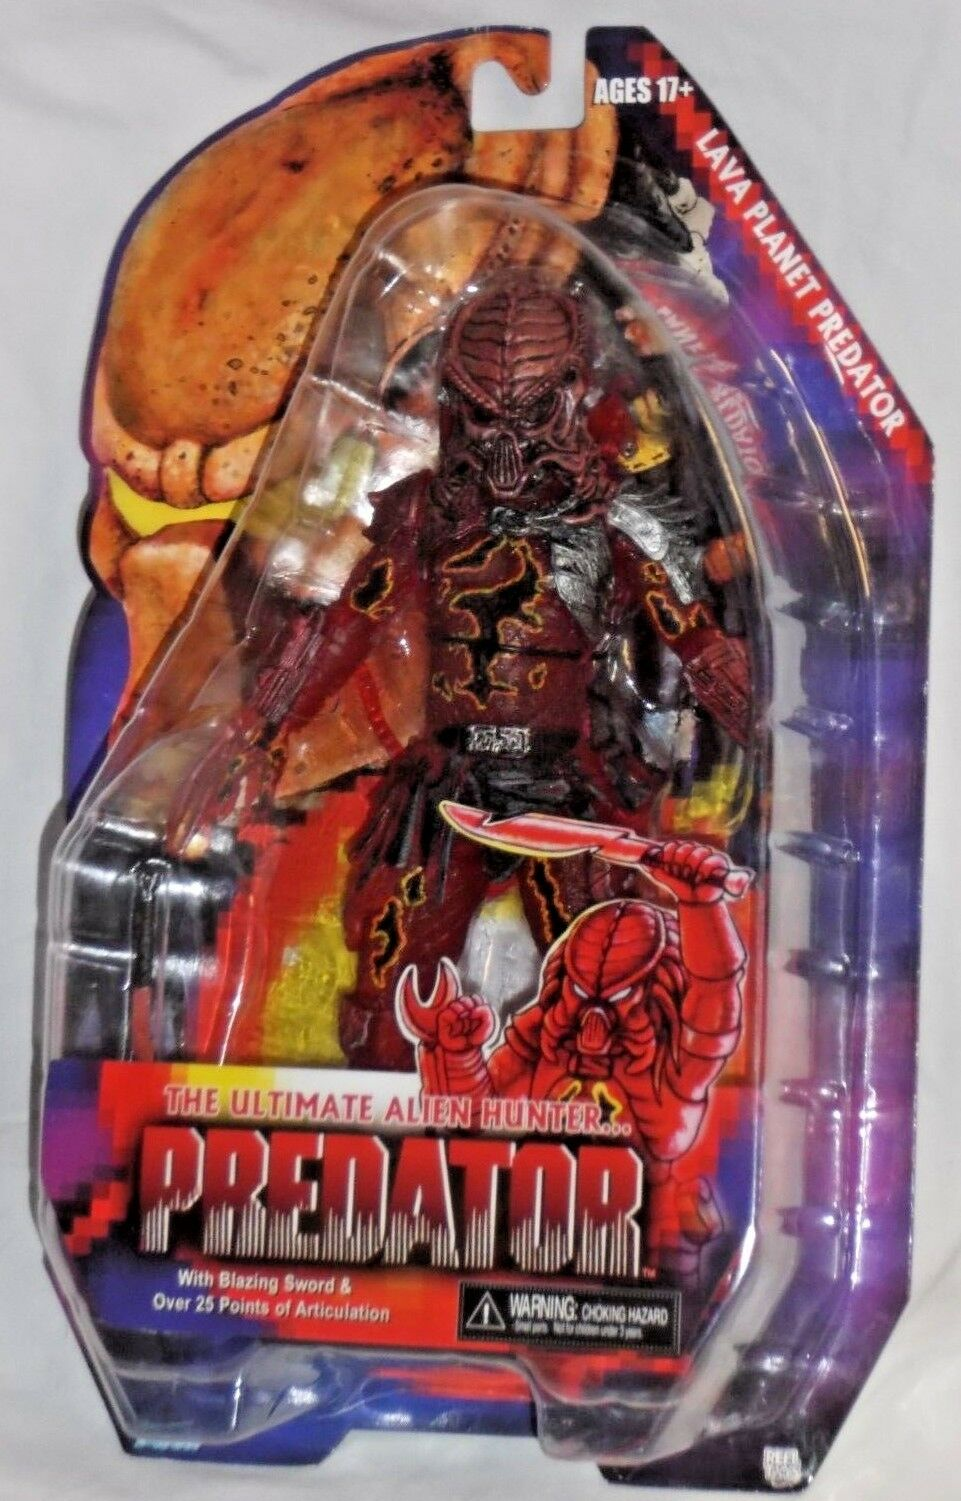 NECA ALIEN HUNTER ProssoATOR Series 10 LAVA PLANET horror movie 7  action figure